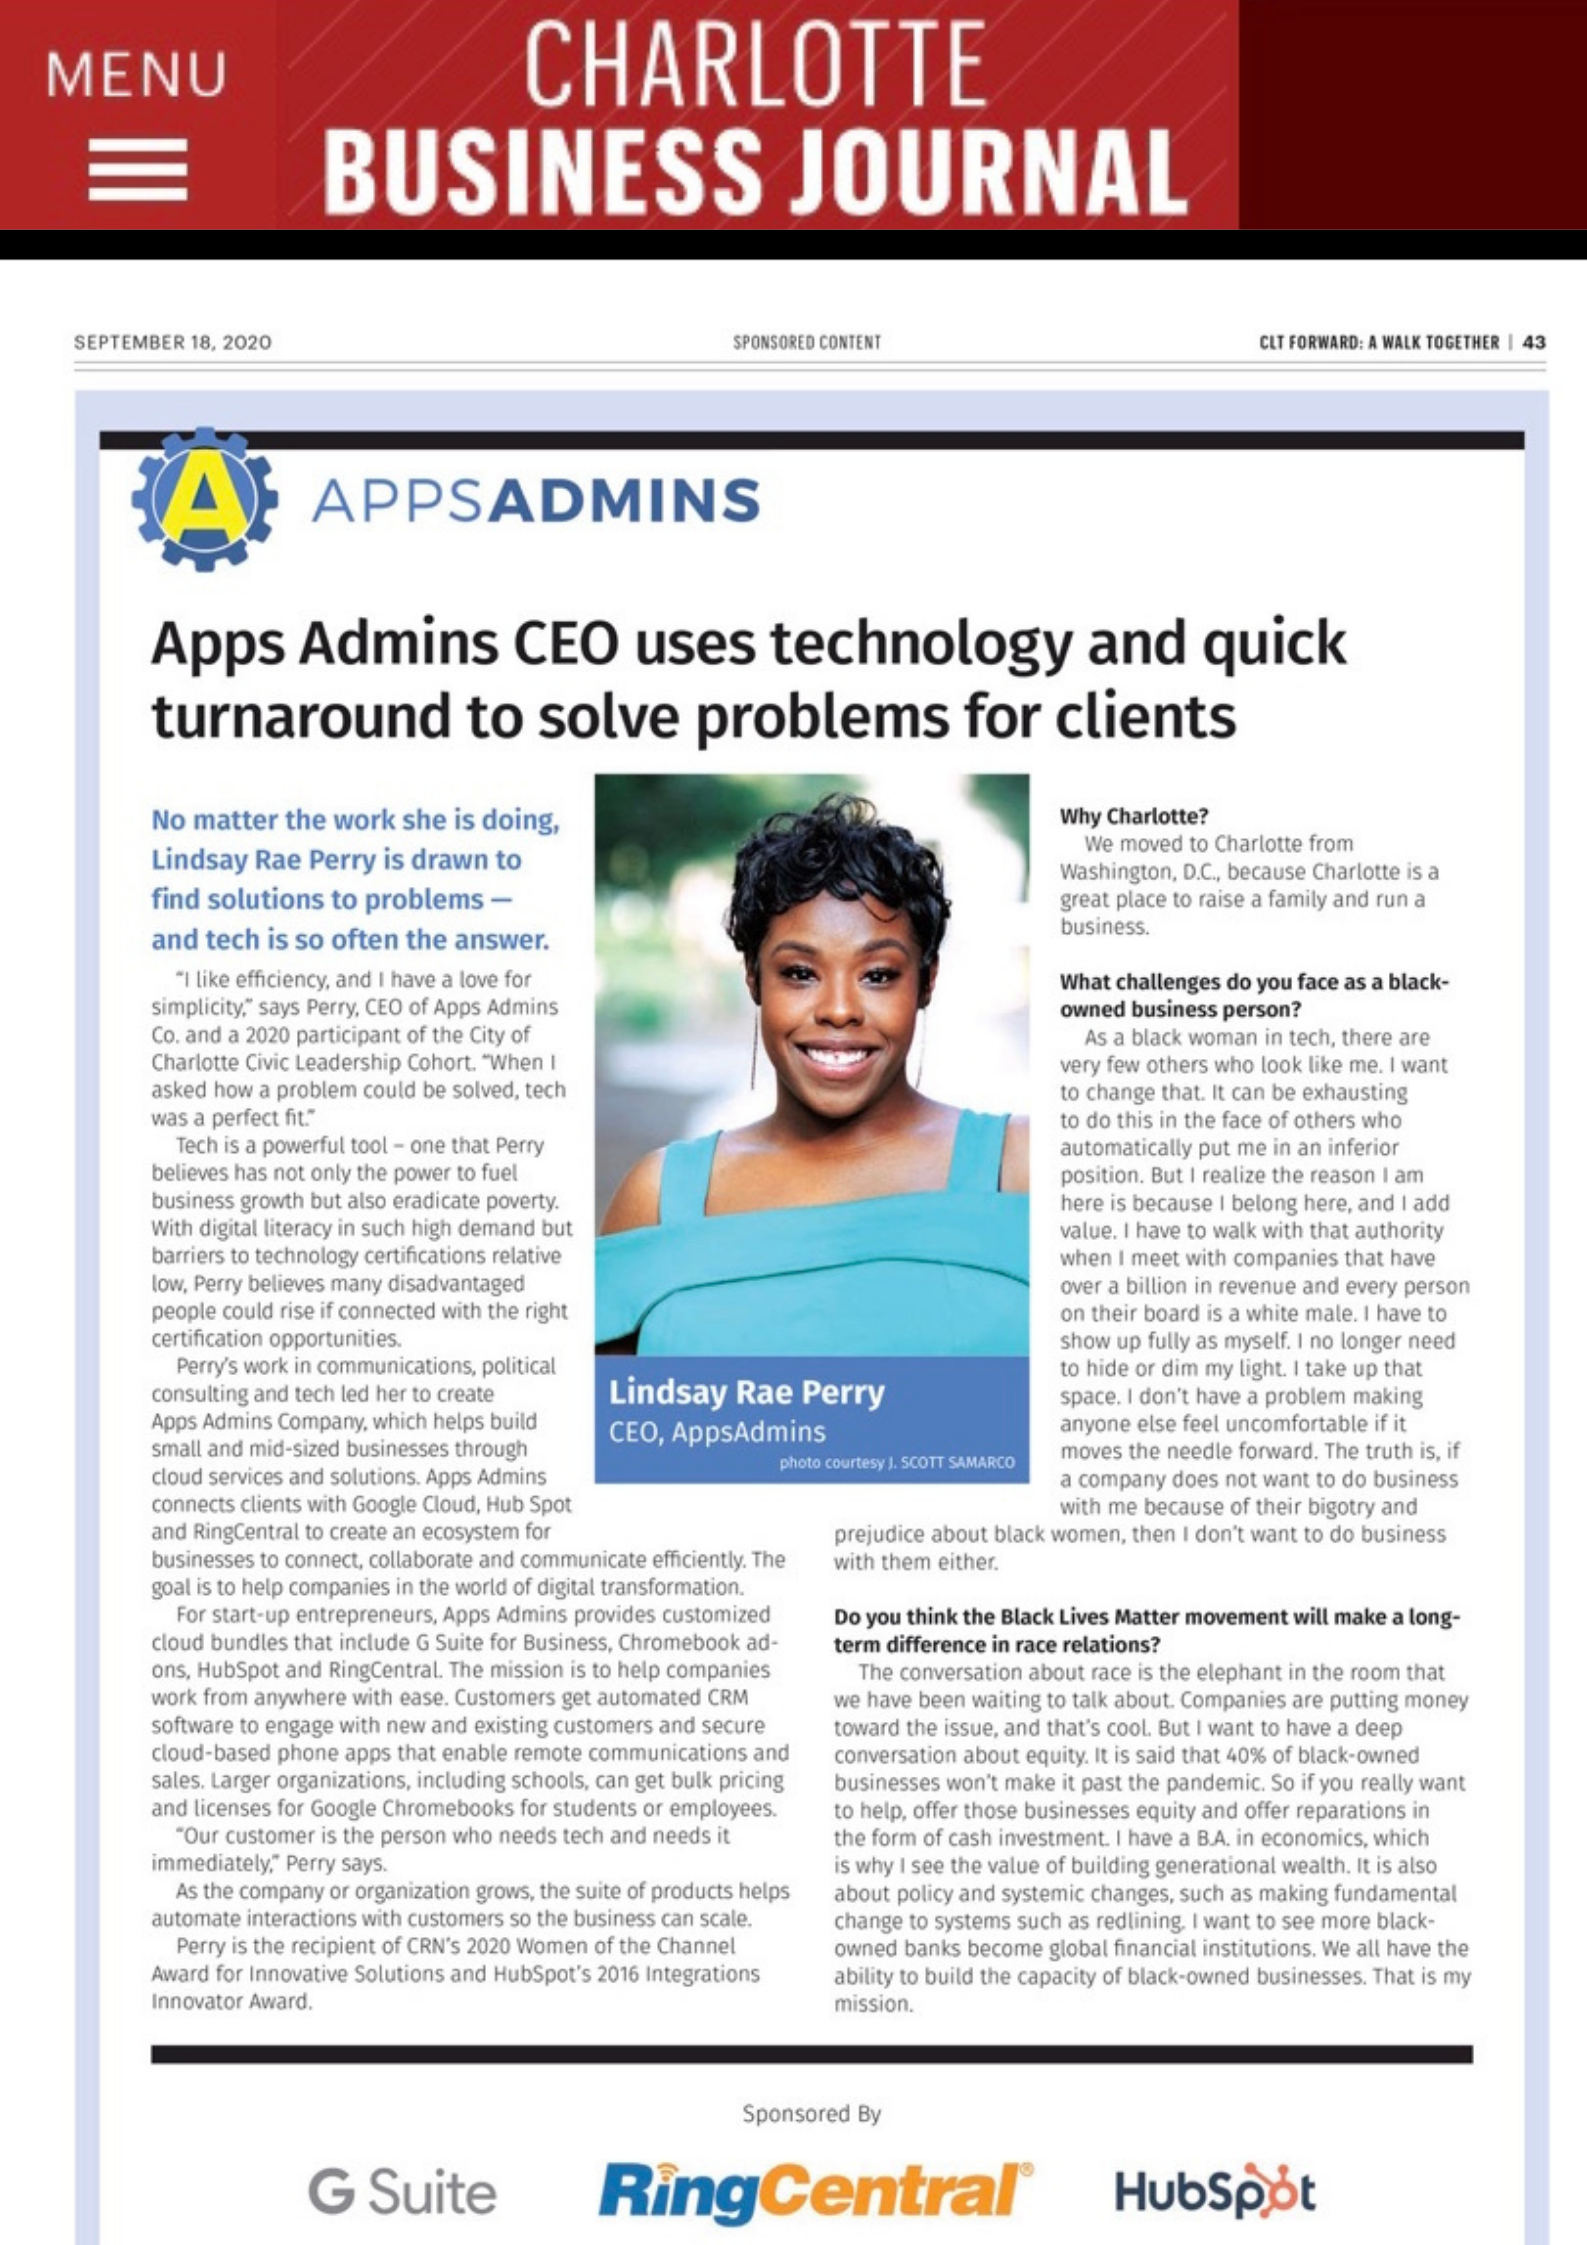 Apps_Admins_CEO_Charlotte_Business_Journal